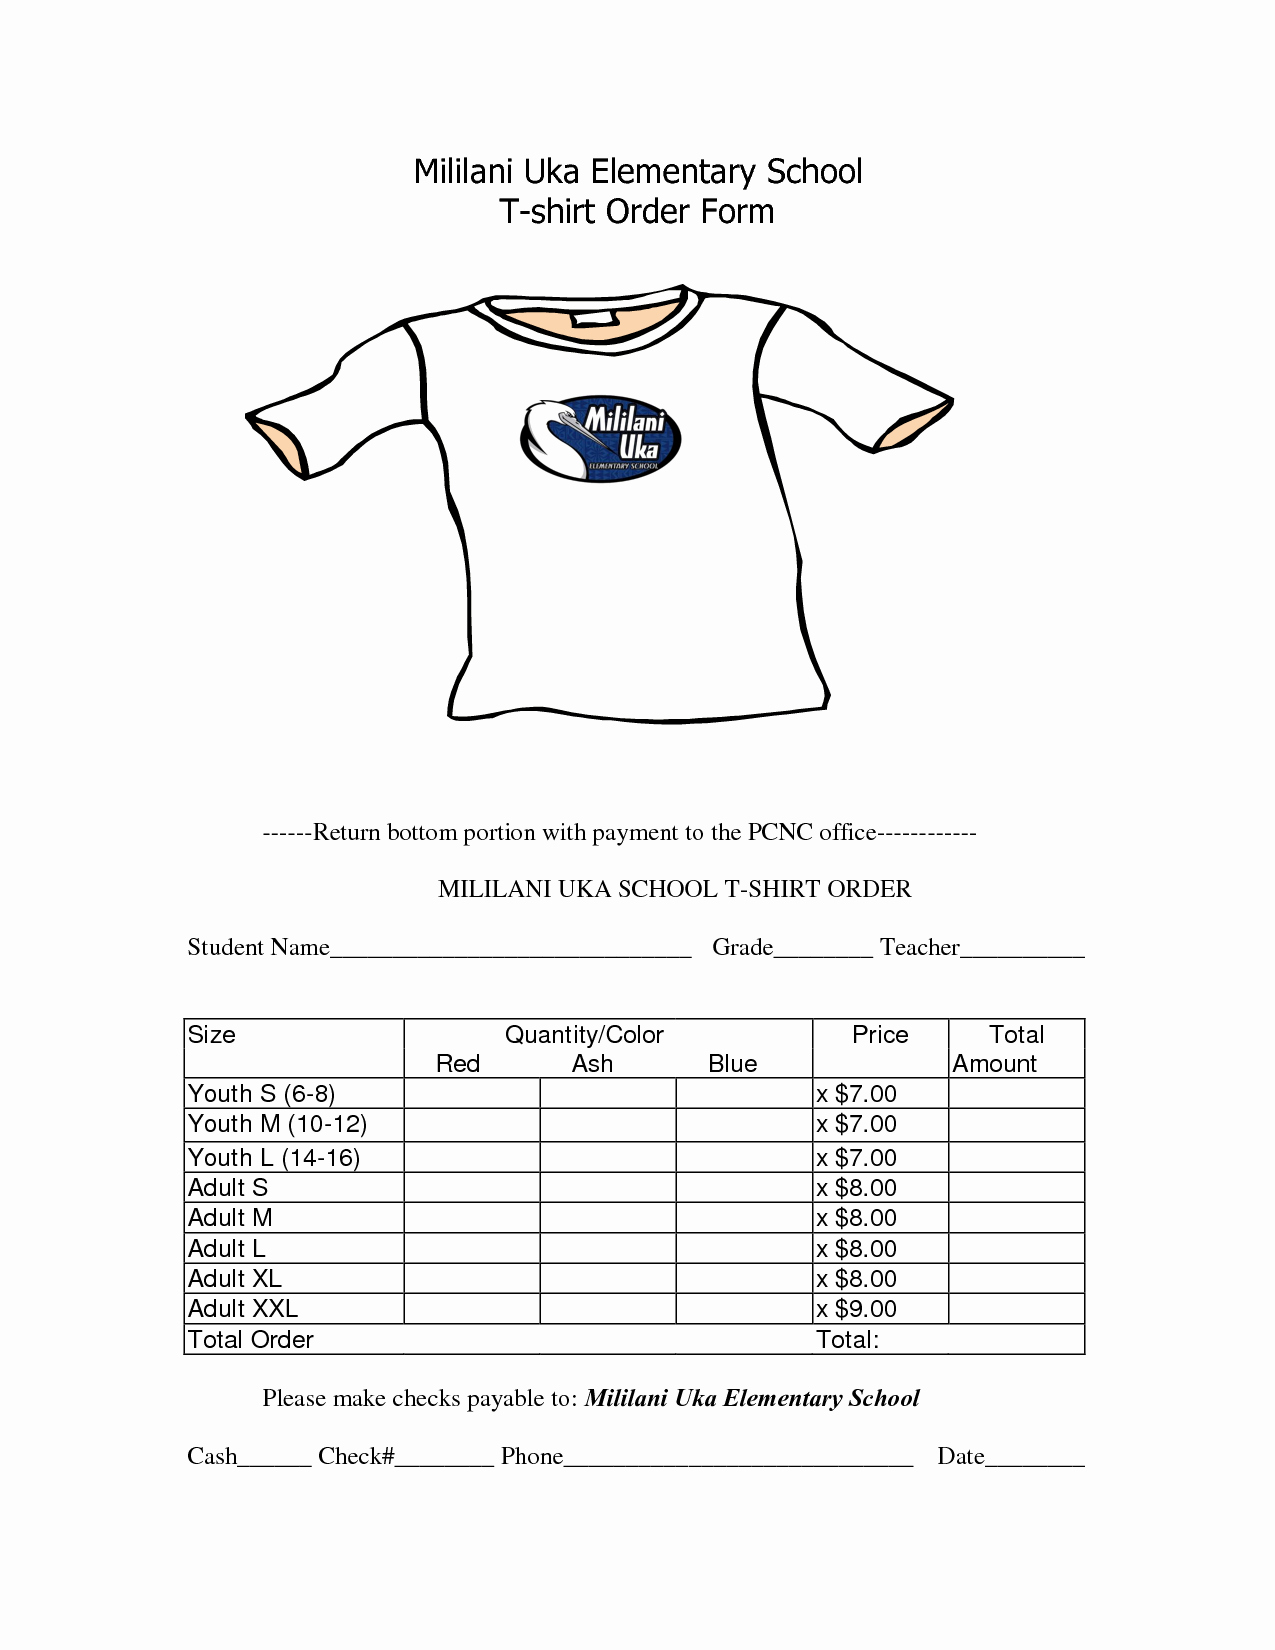 T Shirt order form Word Unique School T Shirt order form Template Awana